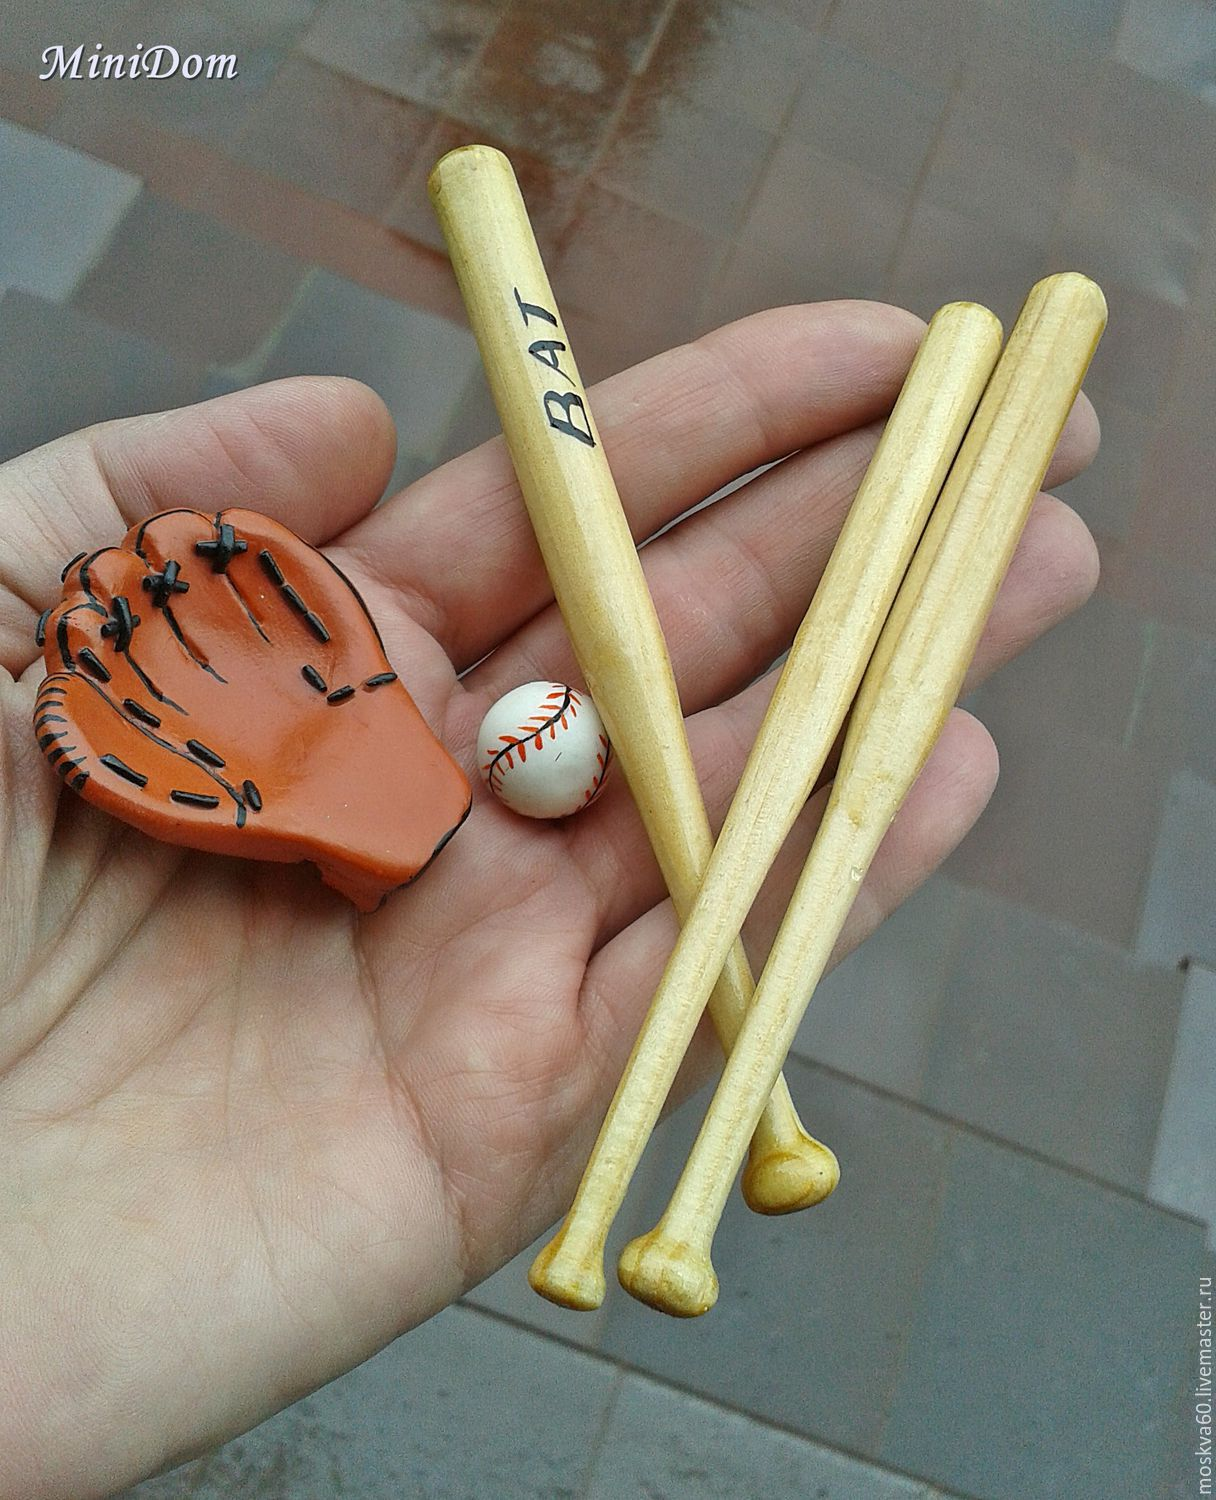 Dollhouse miniature for doll and toy collector's miniature 1 to 12 1 to 6 miniature for dolls baseball bat glove ball handmade custom accessories for dolls doll accessories